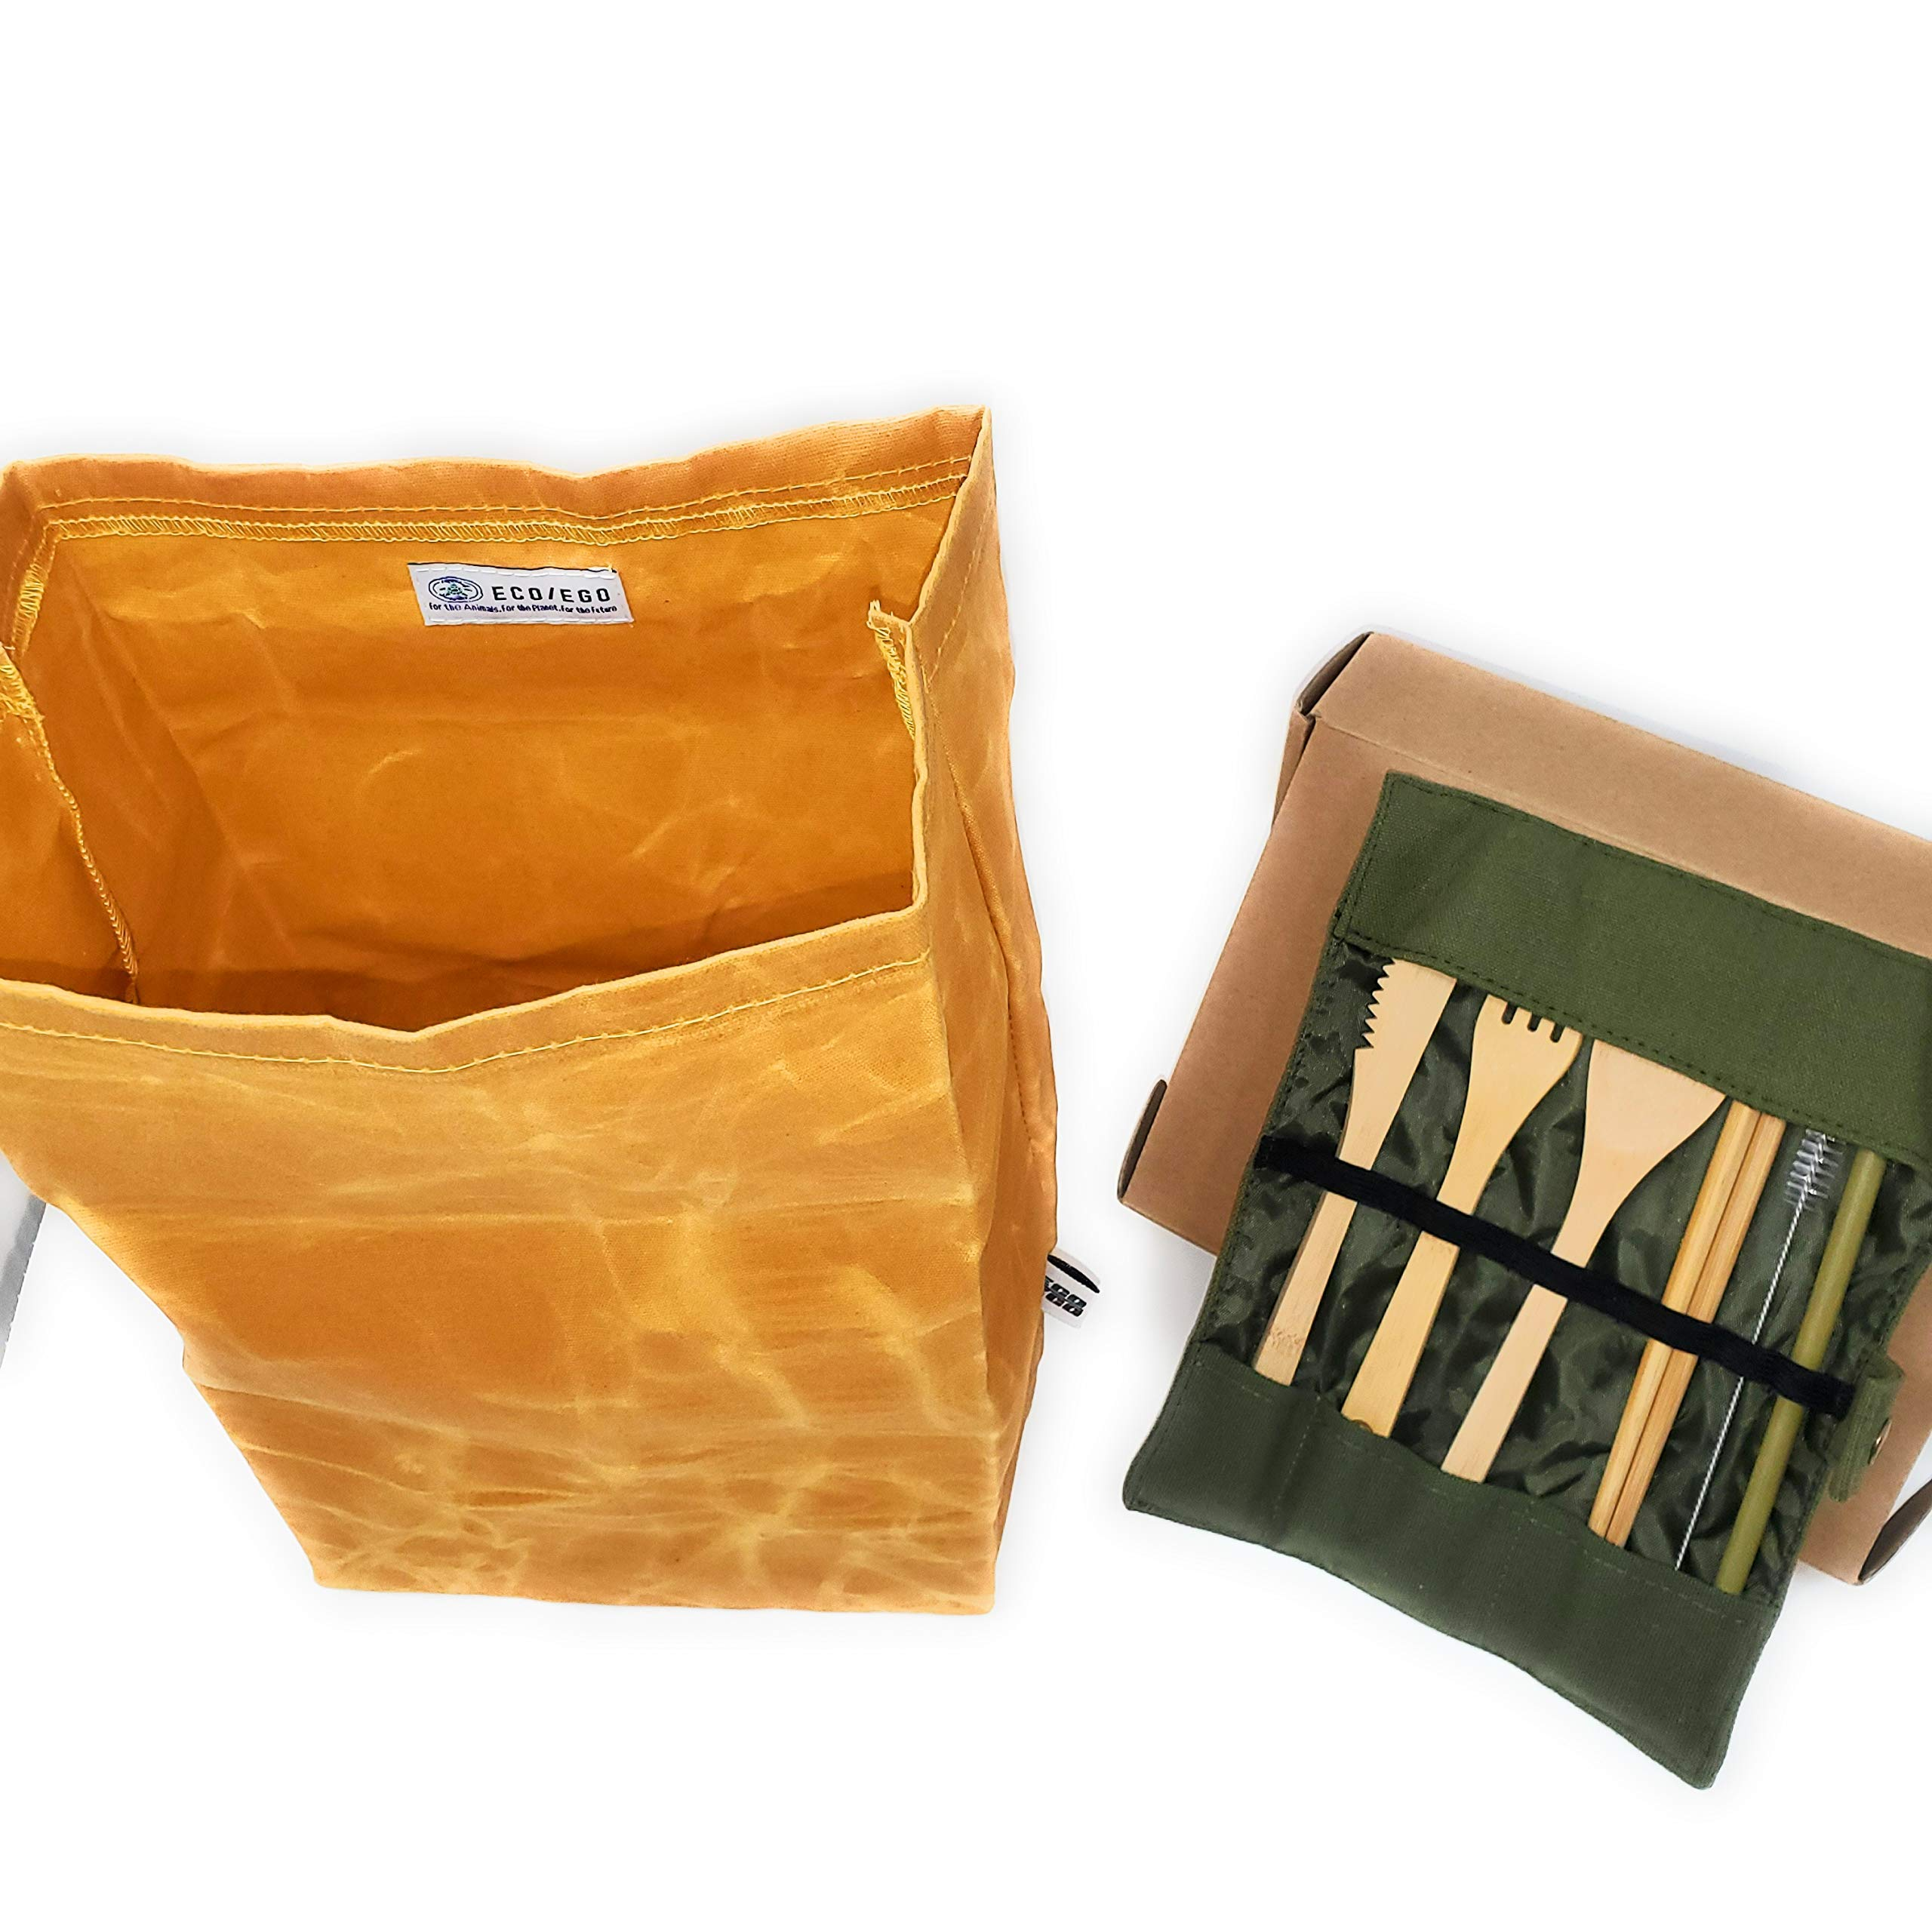 USA owned ECO/EGO Eco-Friendly Lunch Set/ 1 heavy duty and waterproof waxed canvas lunch bag/ 1 bamboo cutlery set (1 knife,1 fork,1 spoon,2 chopsticks,1 straw,1 cleaning brush,1 travel pouch).